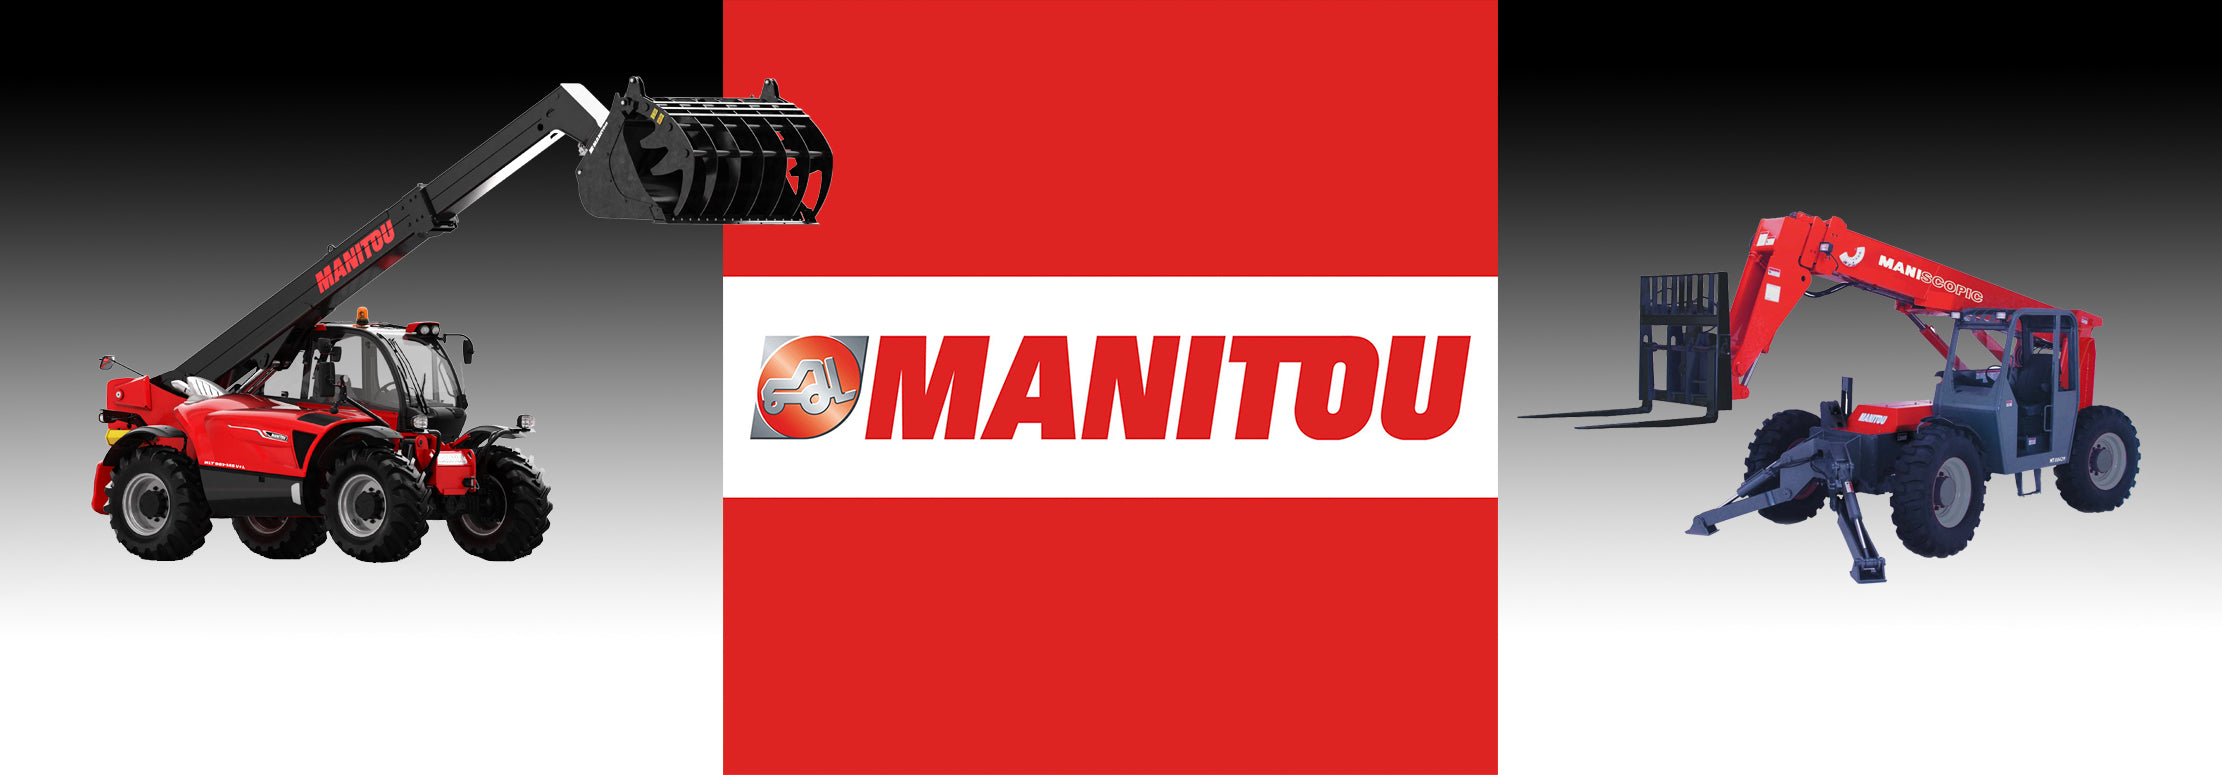 Manitou equipment tire covers tire socks drip diapers surface protection